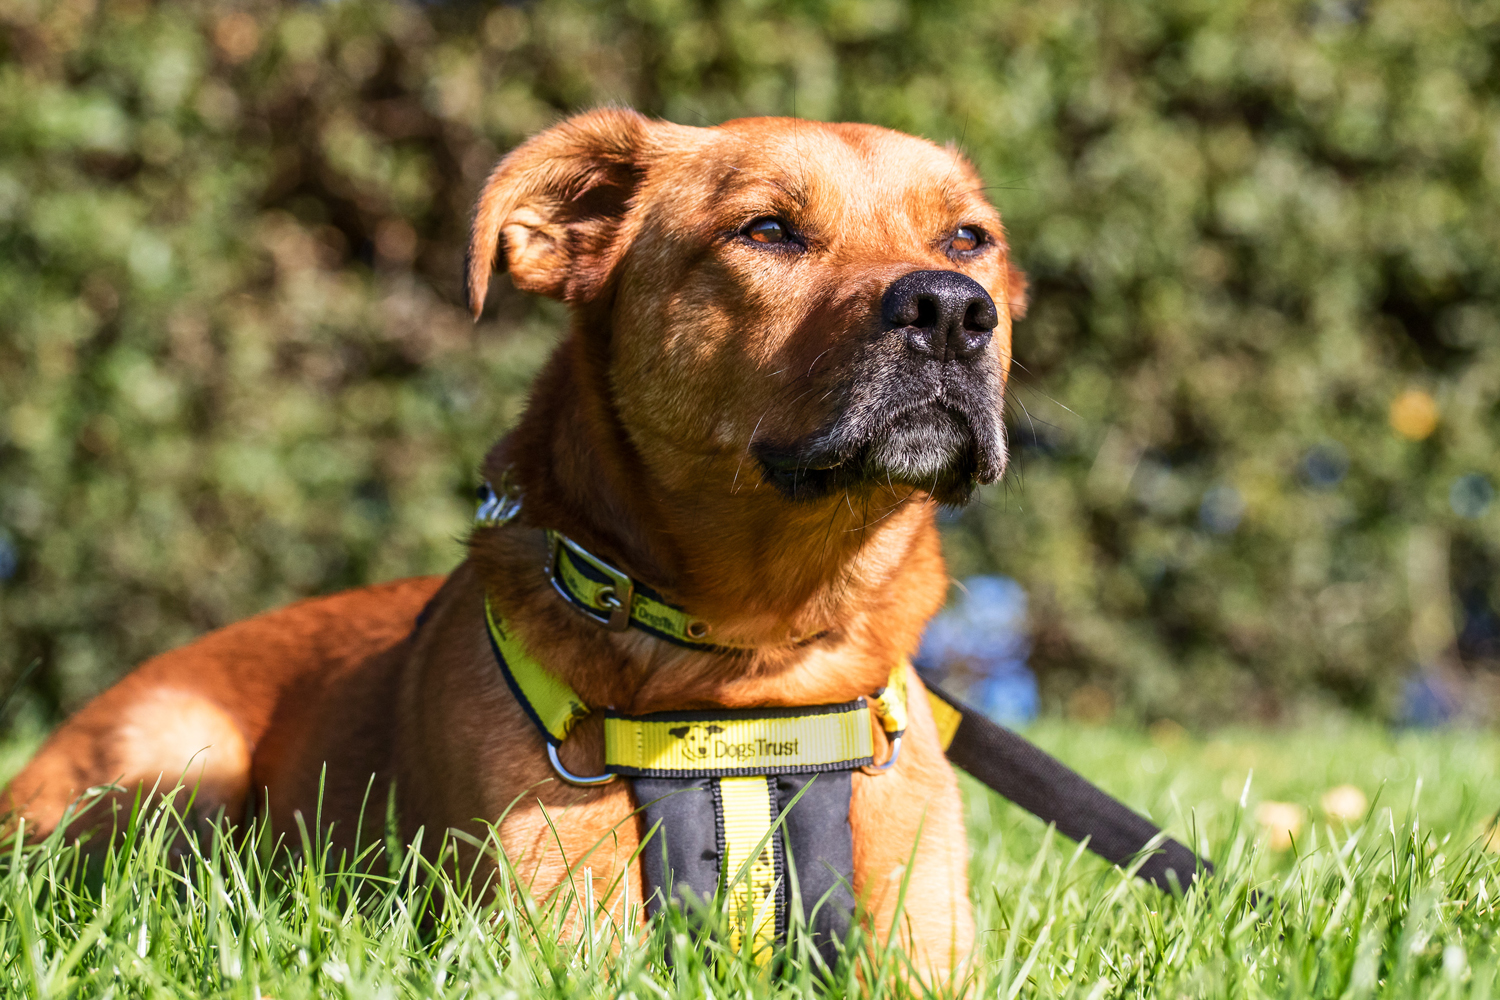 2017 The Most Popular Year for Rehoming a Dog